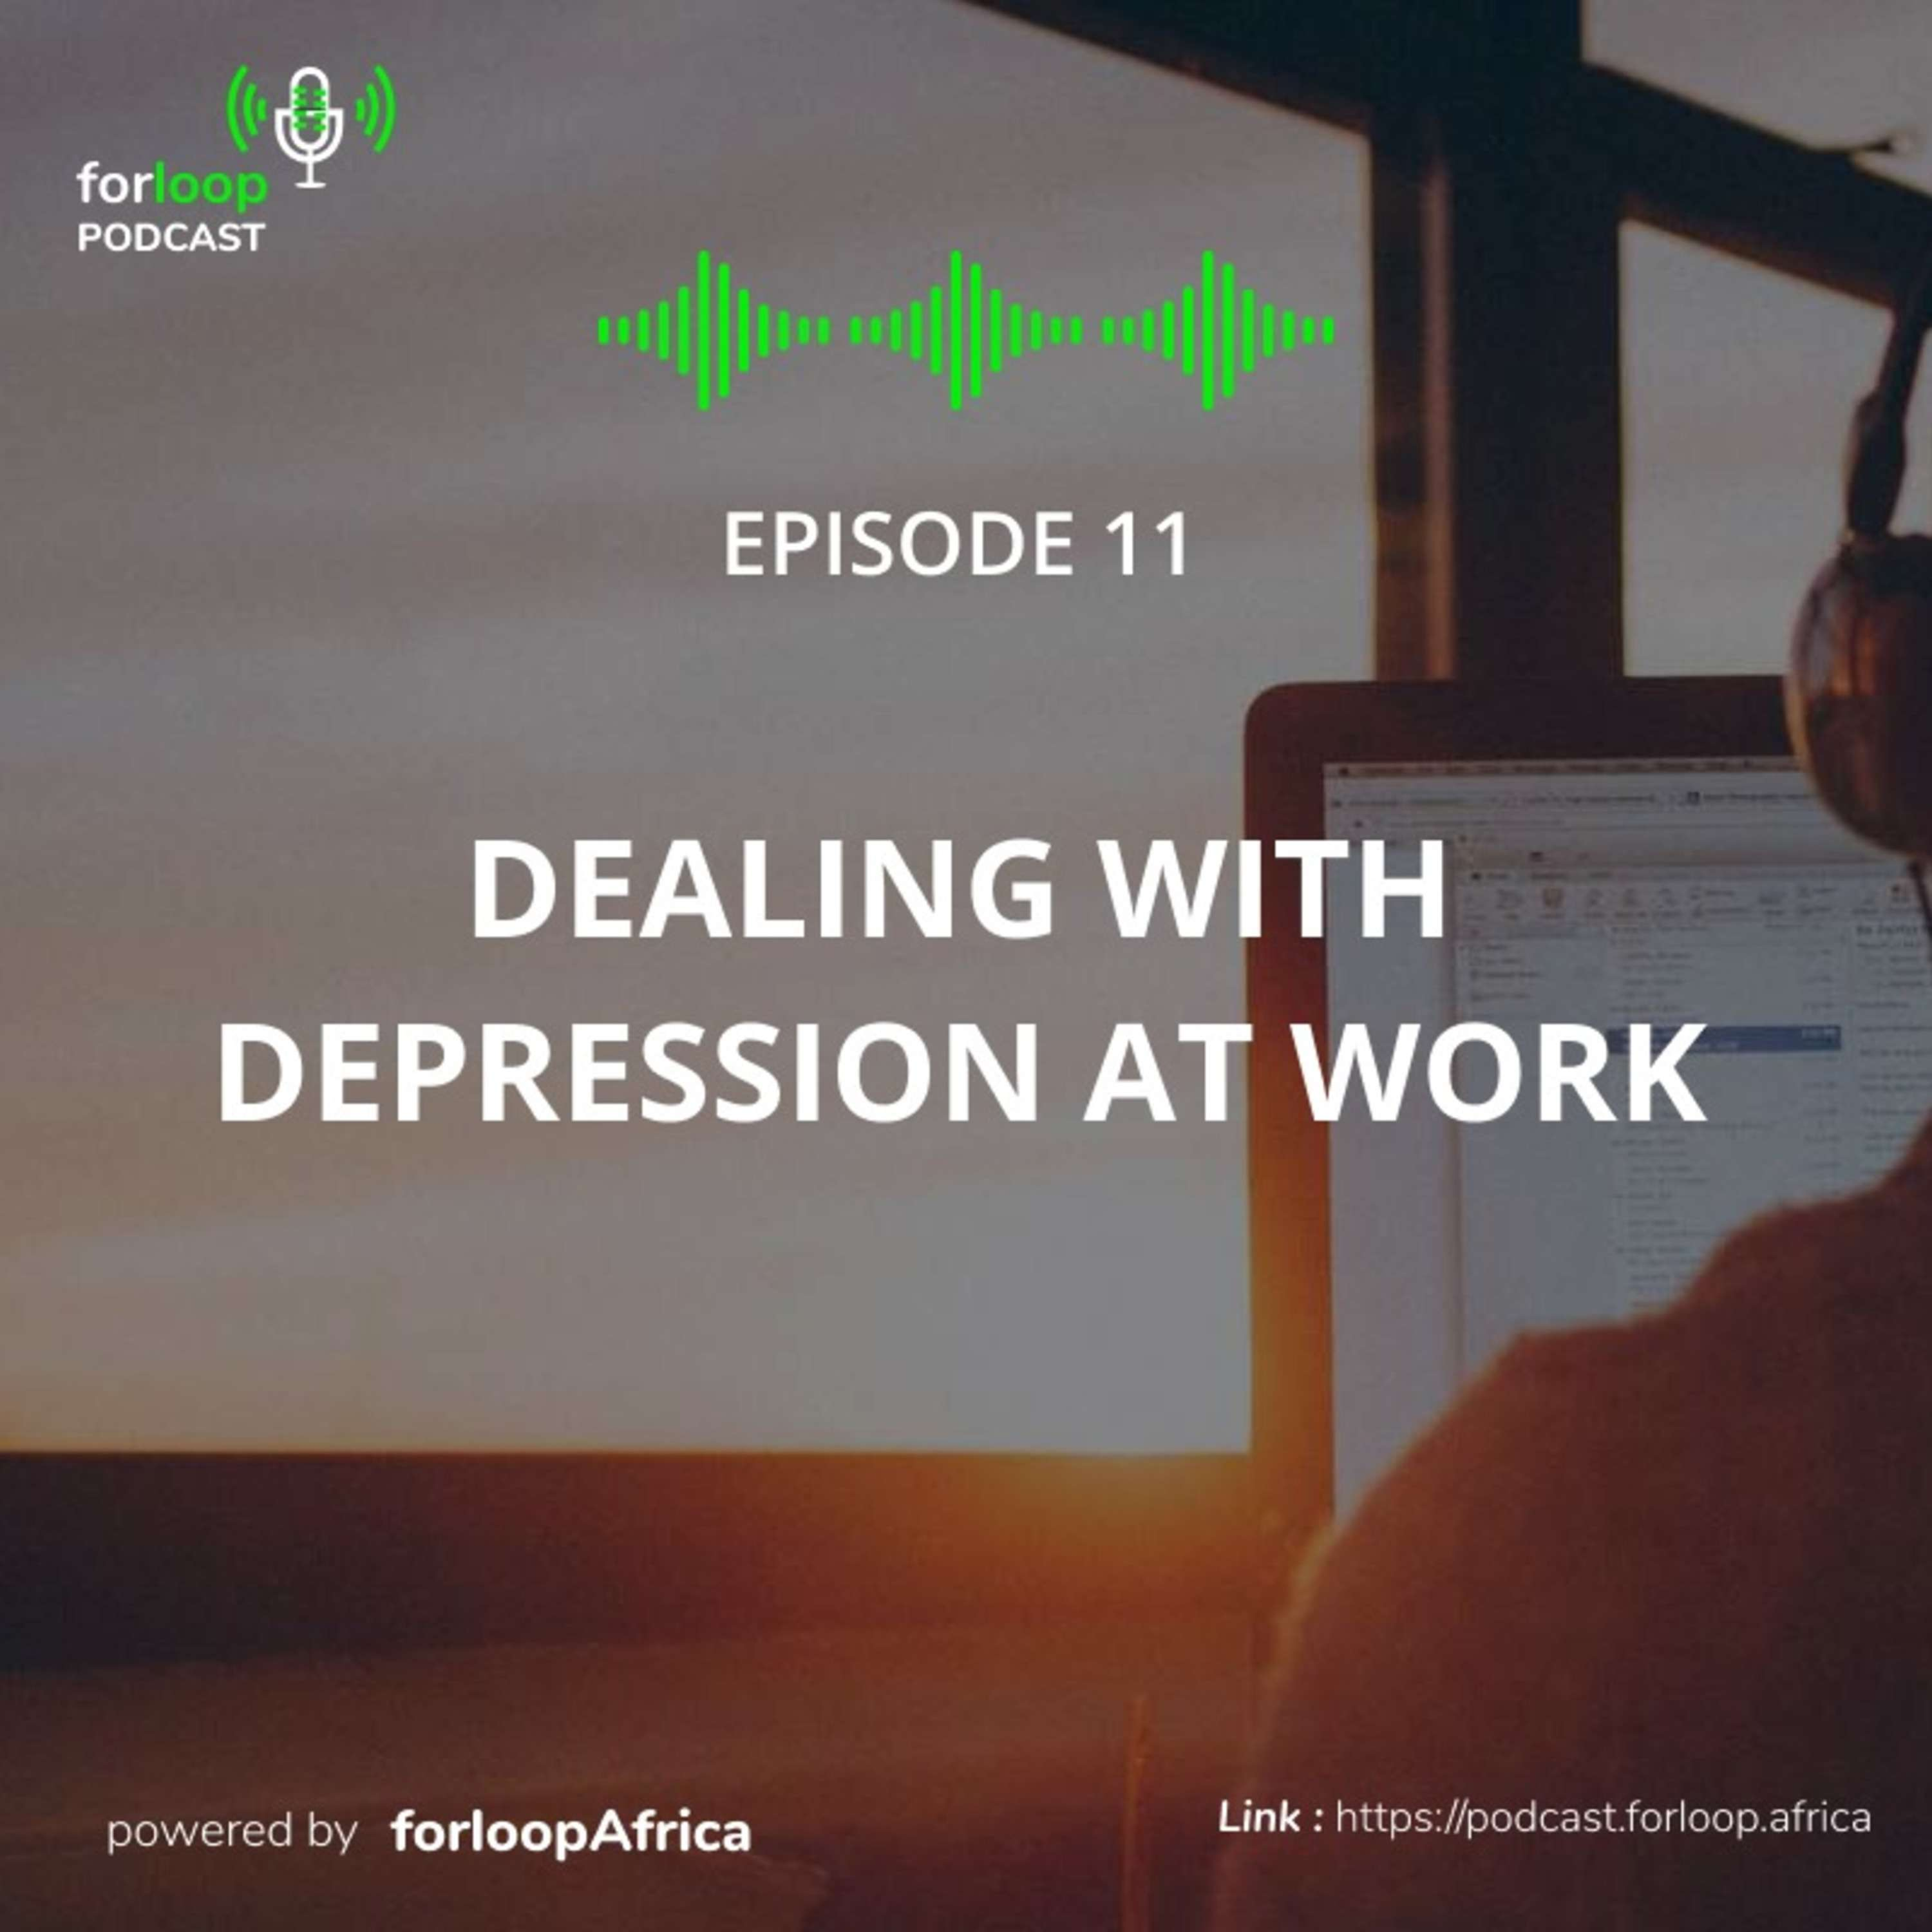 EP.11 - Dealing with depression at work